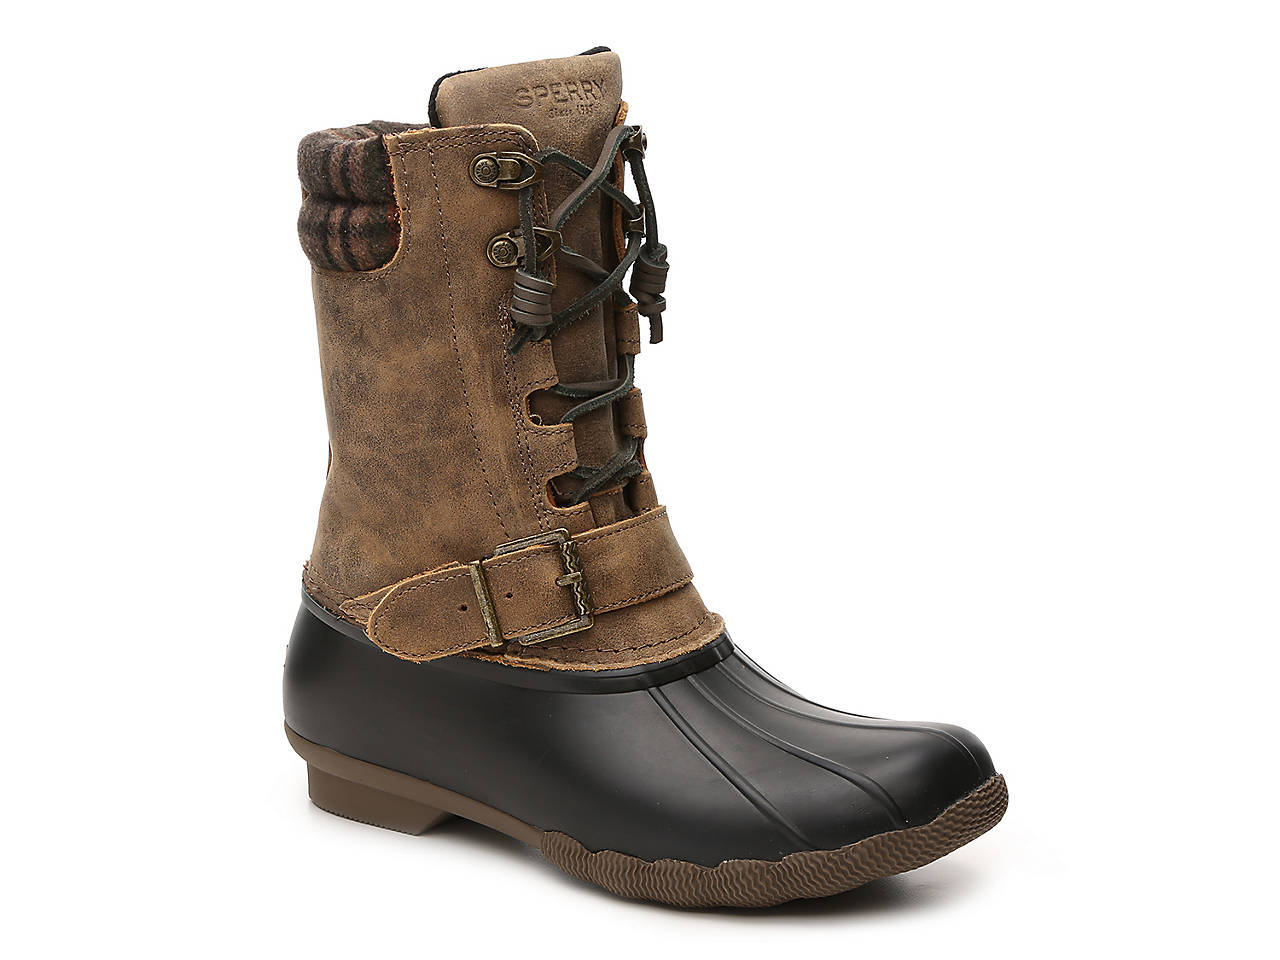 Sperry Top-Sider Saltwater Misty Thinsulate Duck Boot (Women's) 4GtG6g2Sg